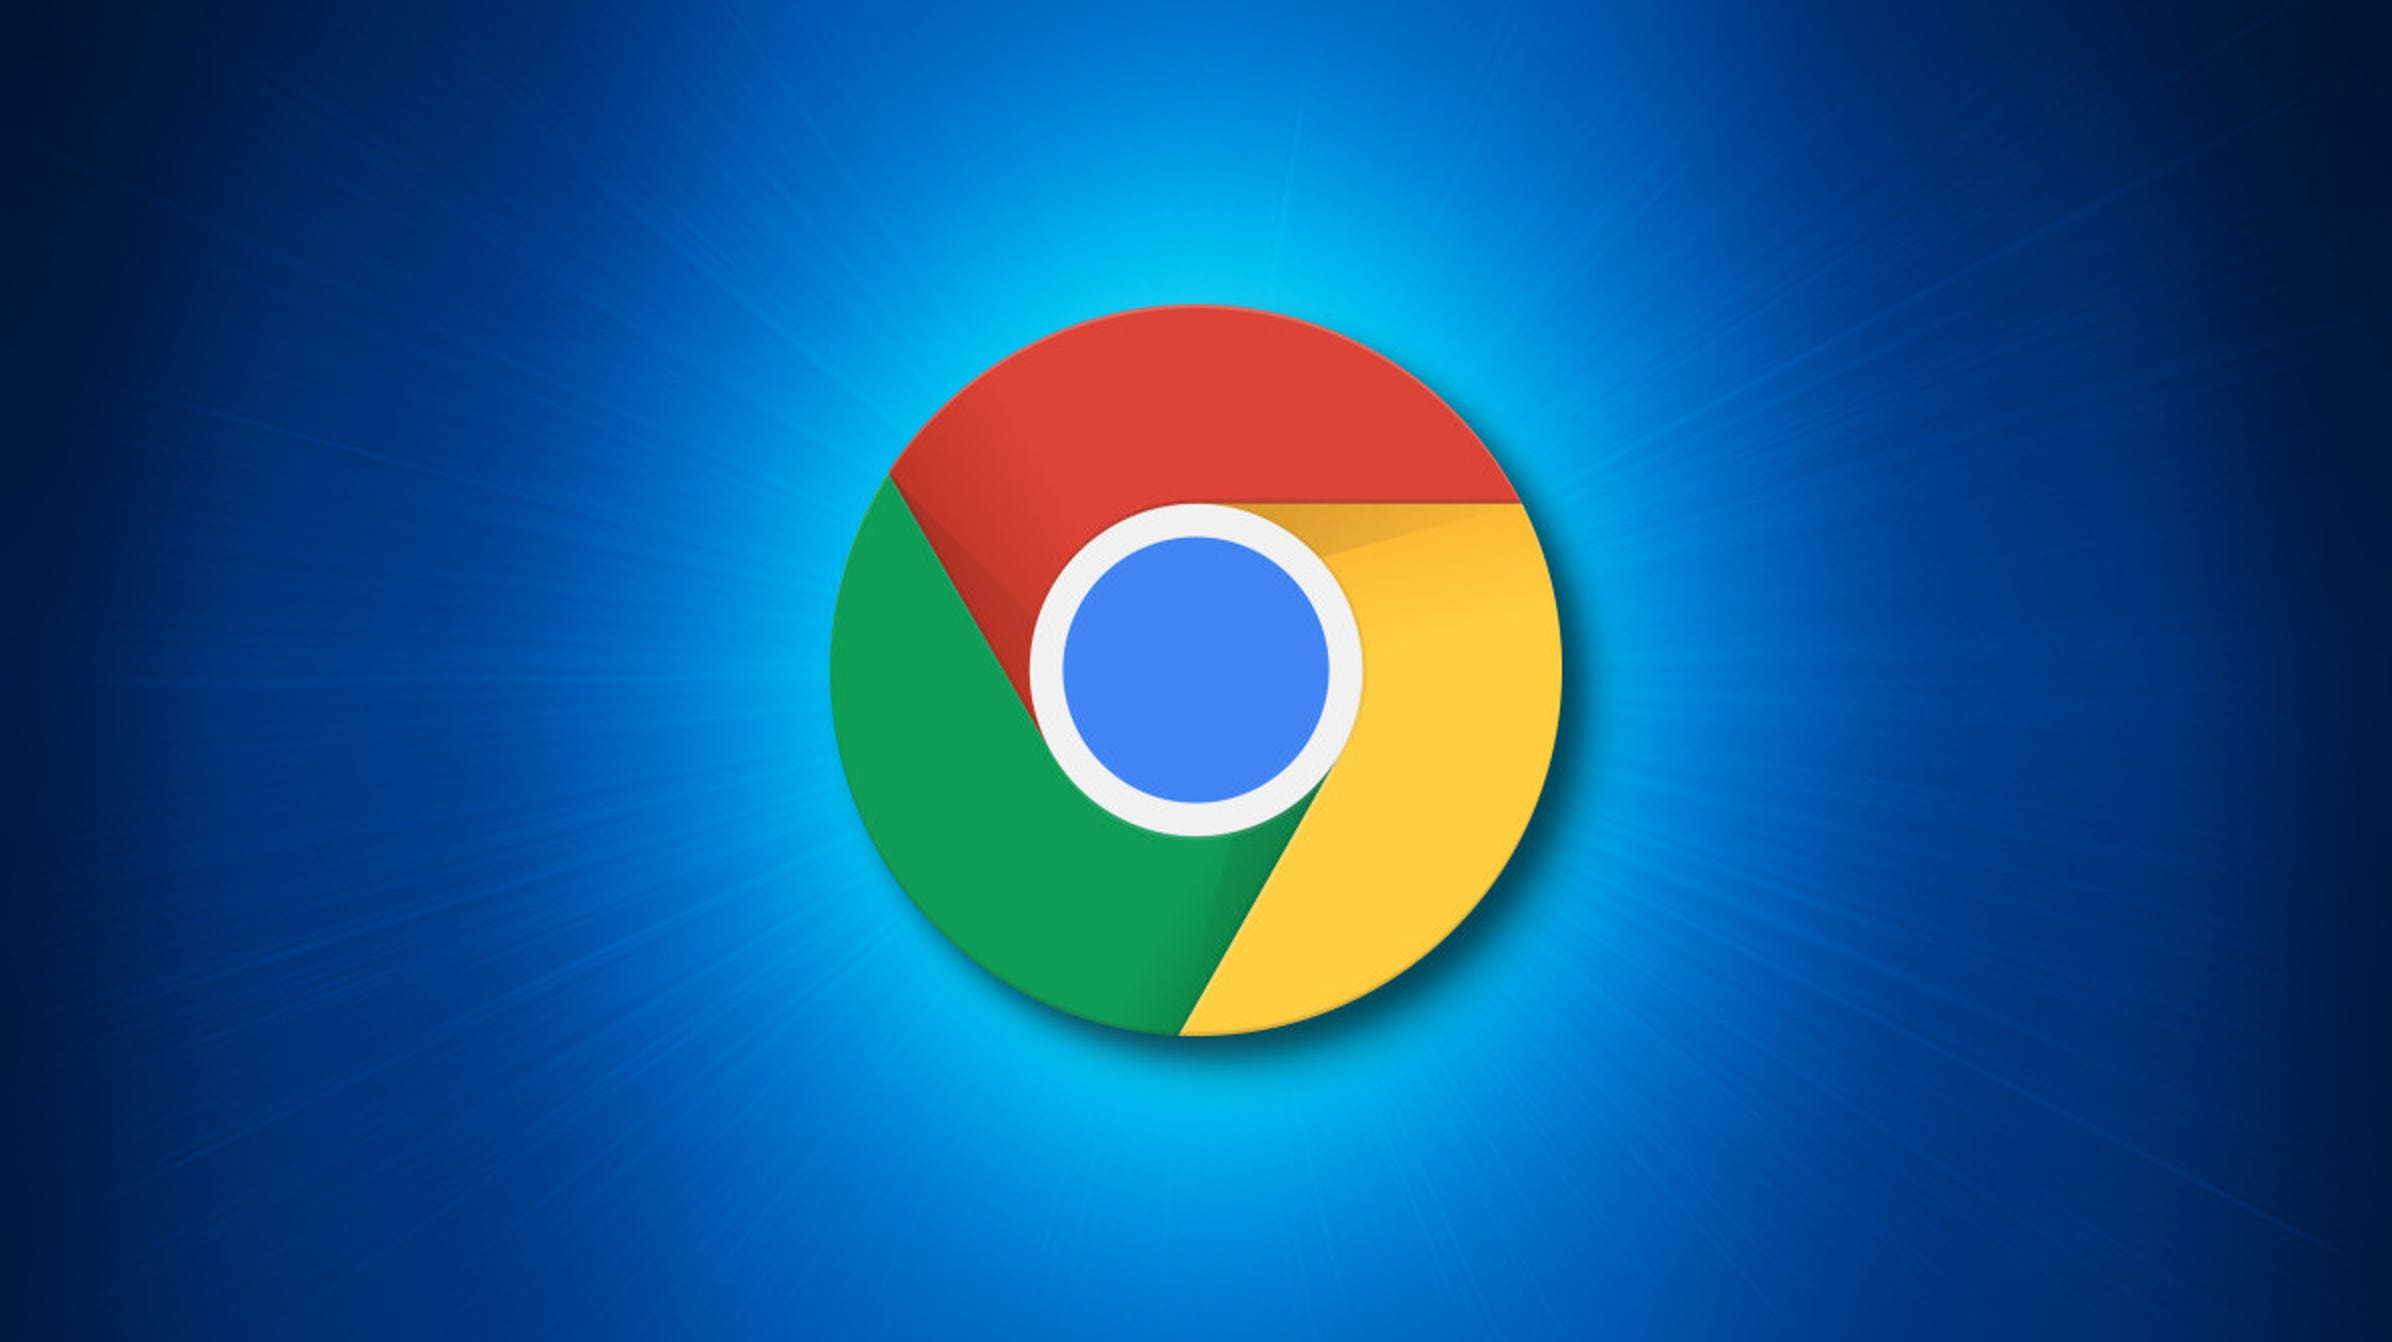 Mozilla Says Chrome's Latest Feature Enables Surveillance - How-To Geek